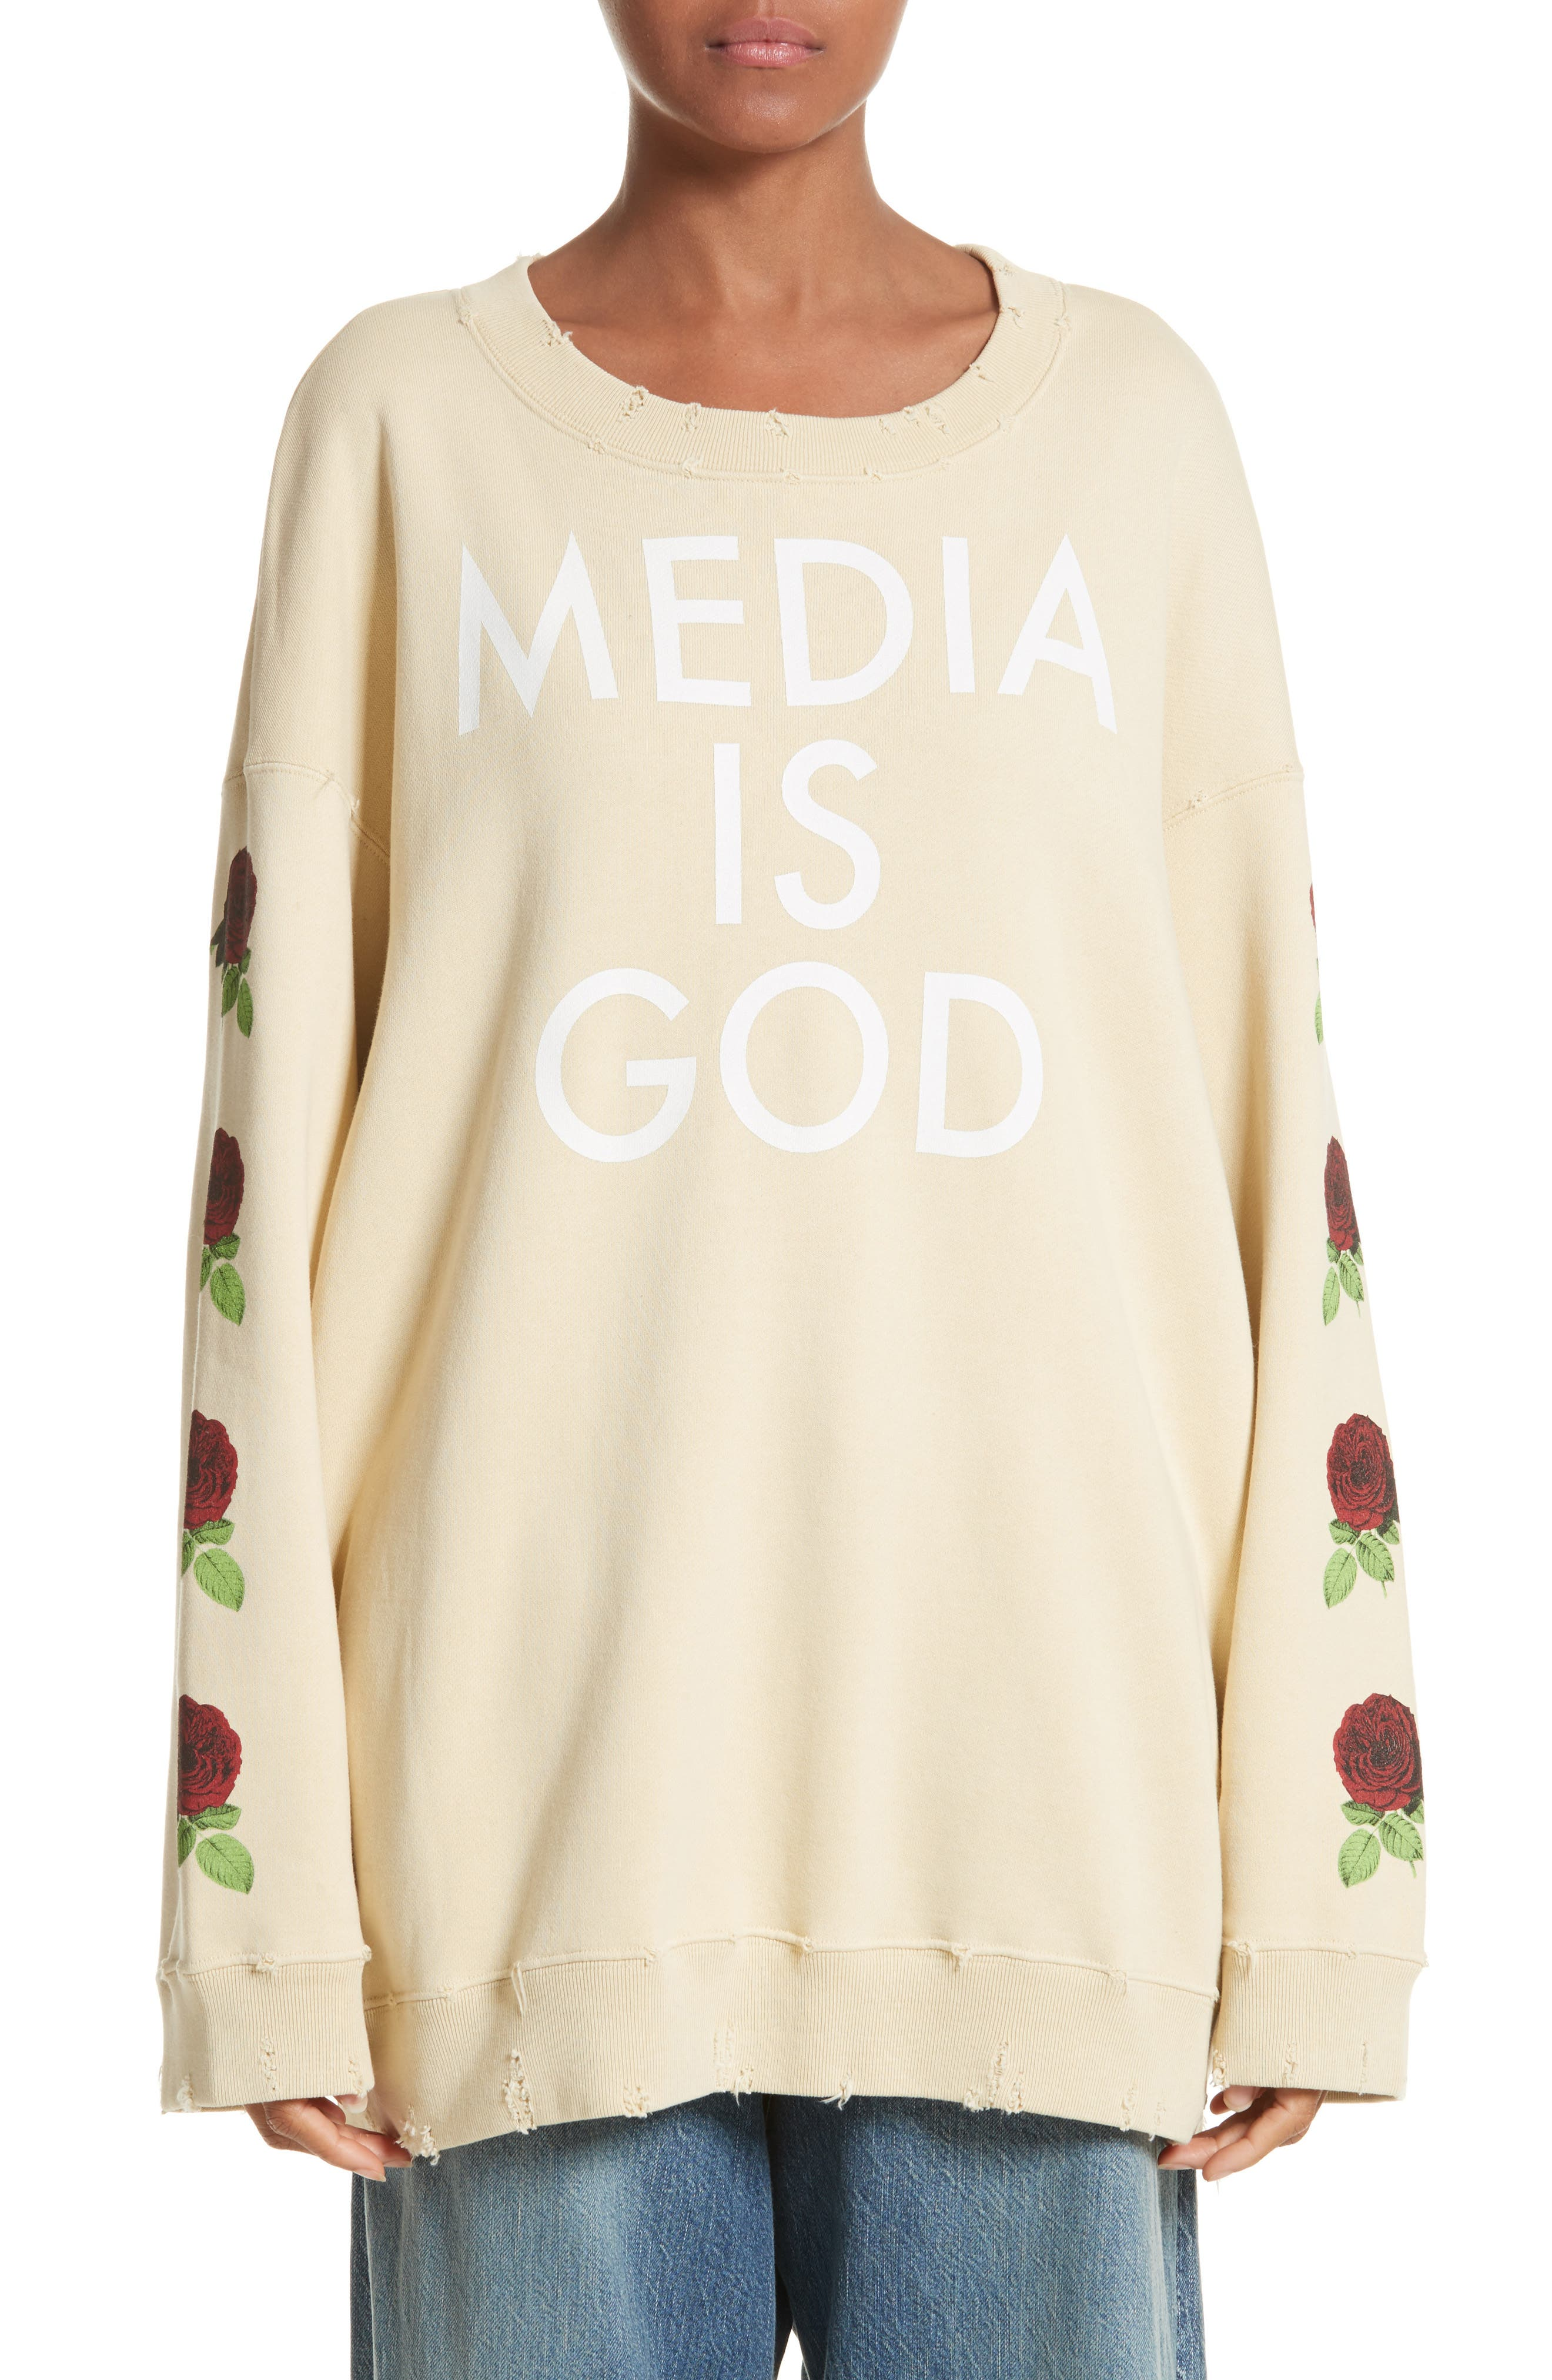 Media Is God Sweatshirt,                             Main thumbnail 1, color,                             Cream